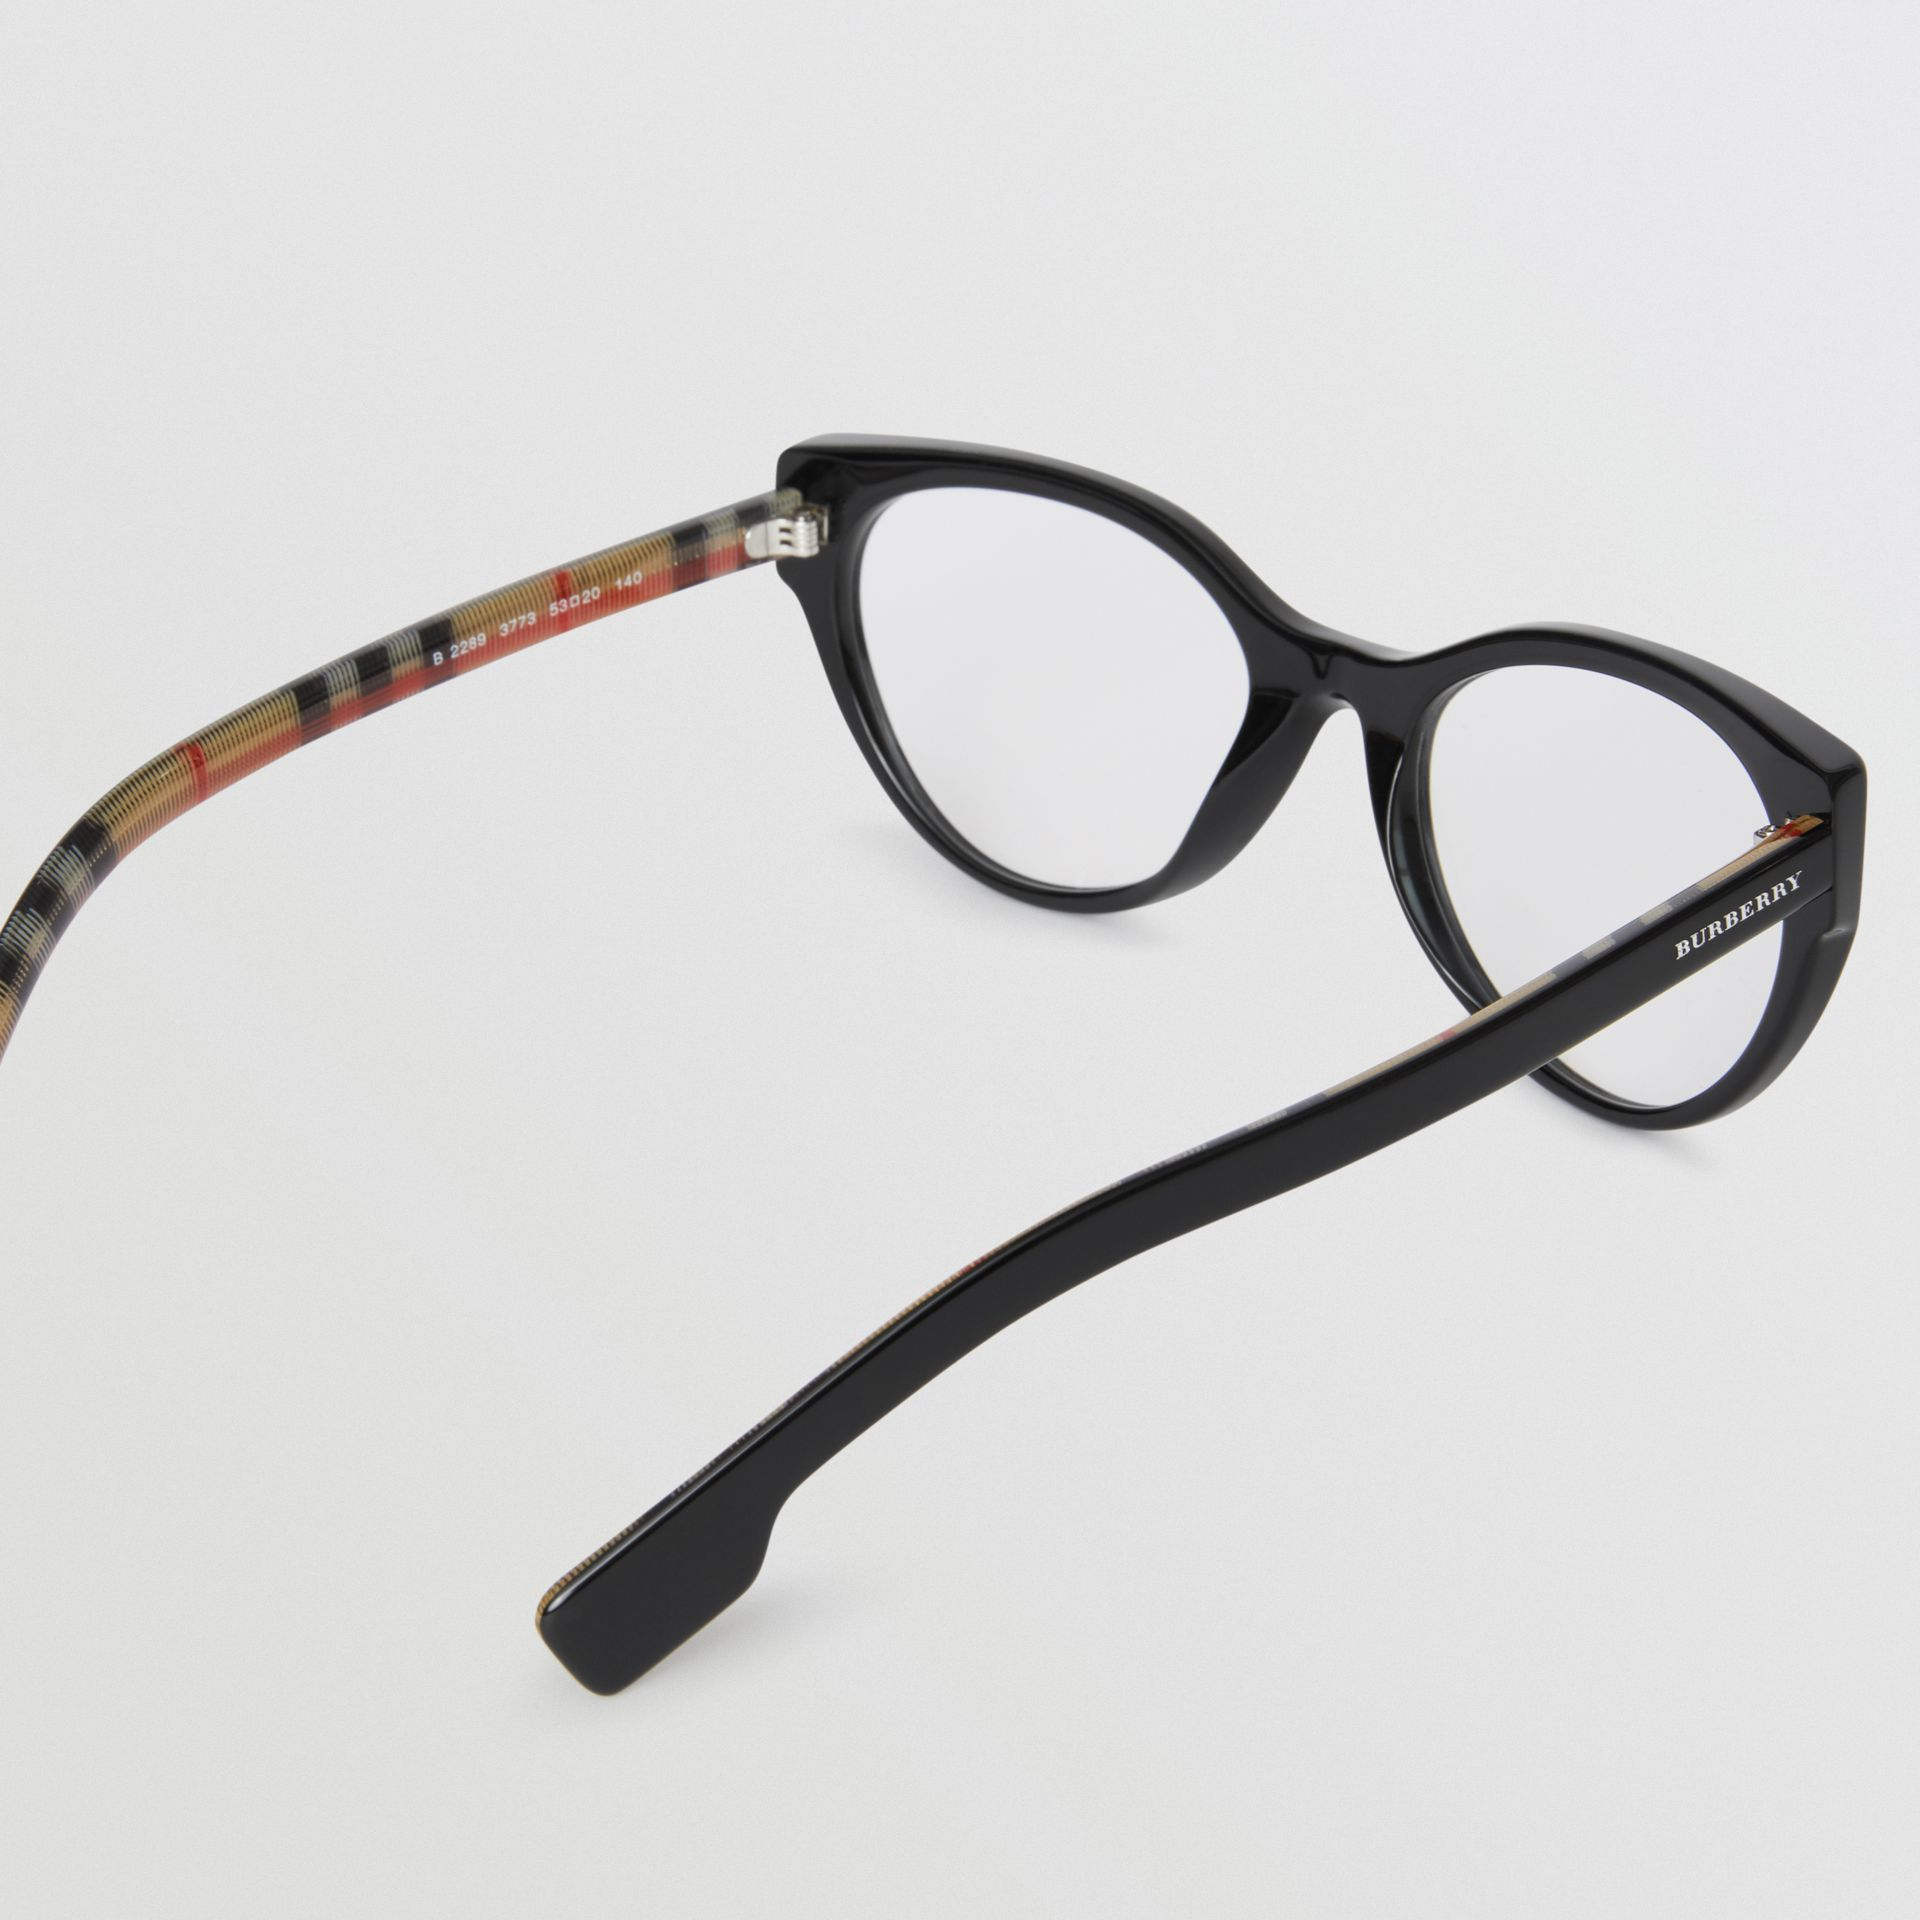 Vintage Check Detail Cat-eye Optical Frames in Black - Women | Burberry Singapore - gallery image 3